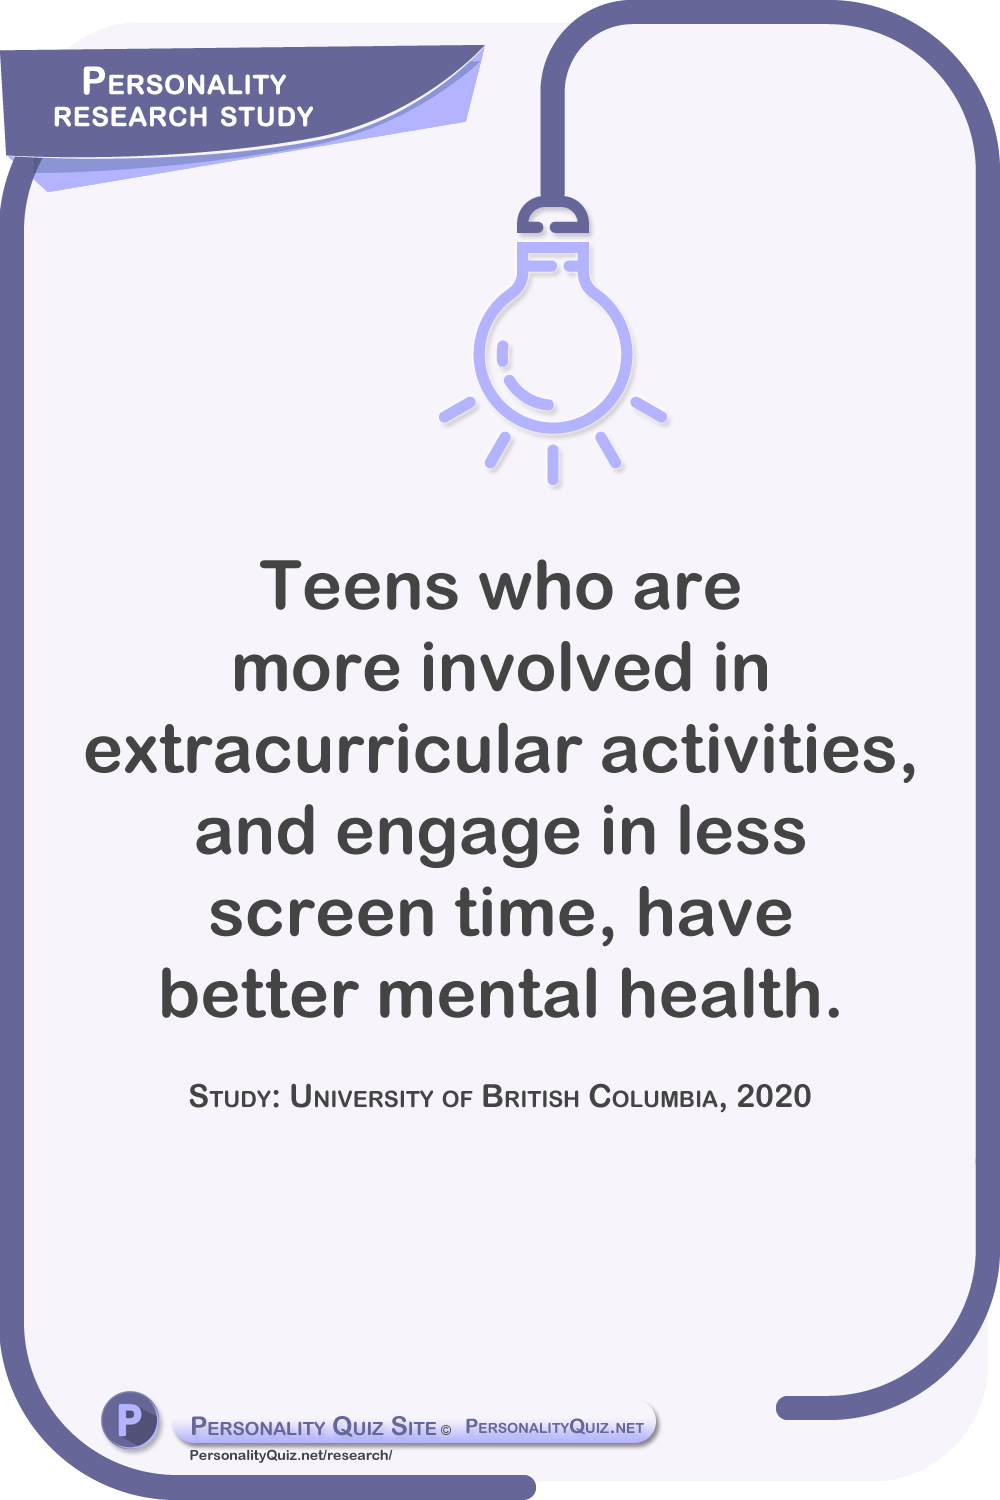 Teens who are more involved in extracurricular activities, and engage in less screen time, have better mental health. Study: University of British Columbia, 2020